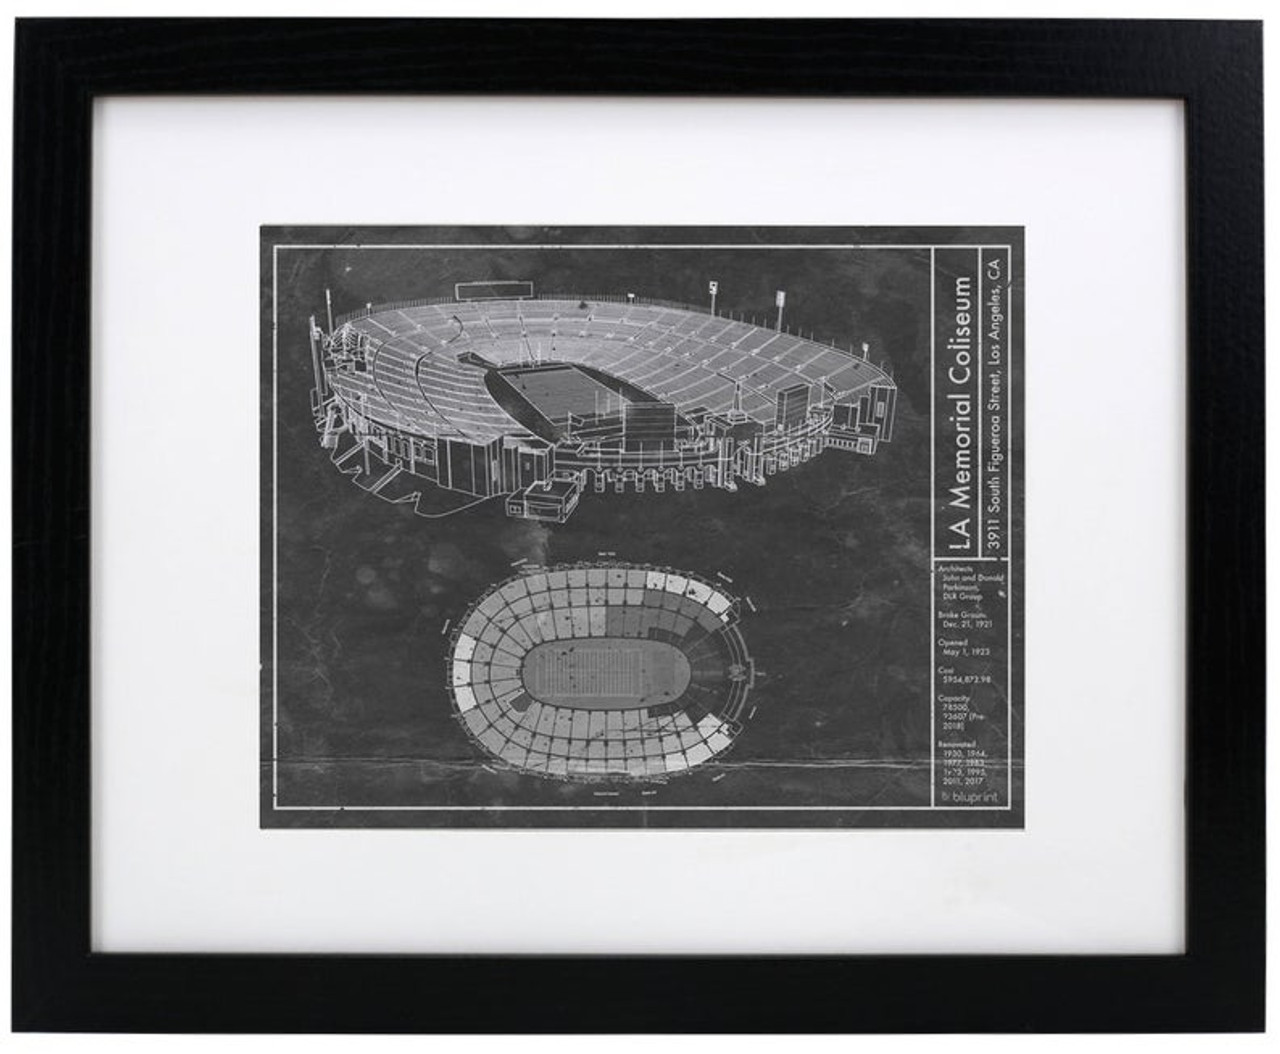 Los Angeles Coliseum - USC Trojans Blueprint Poster